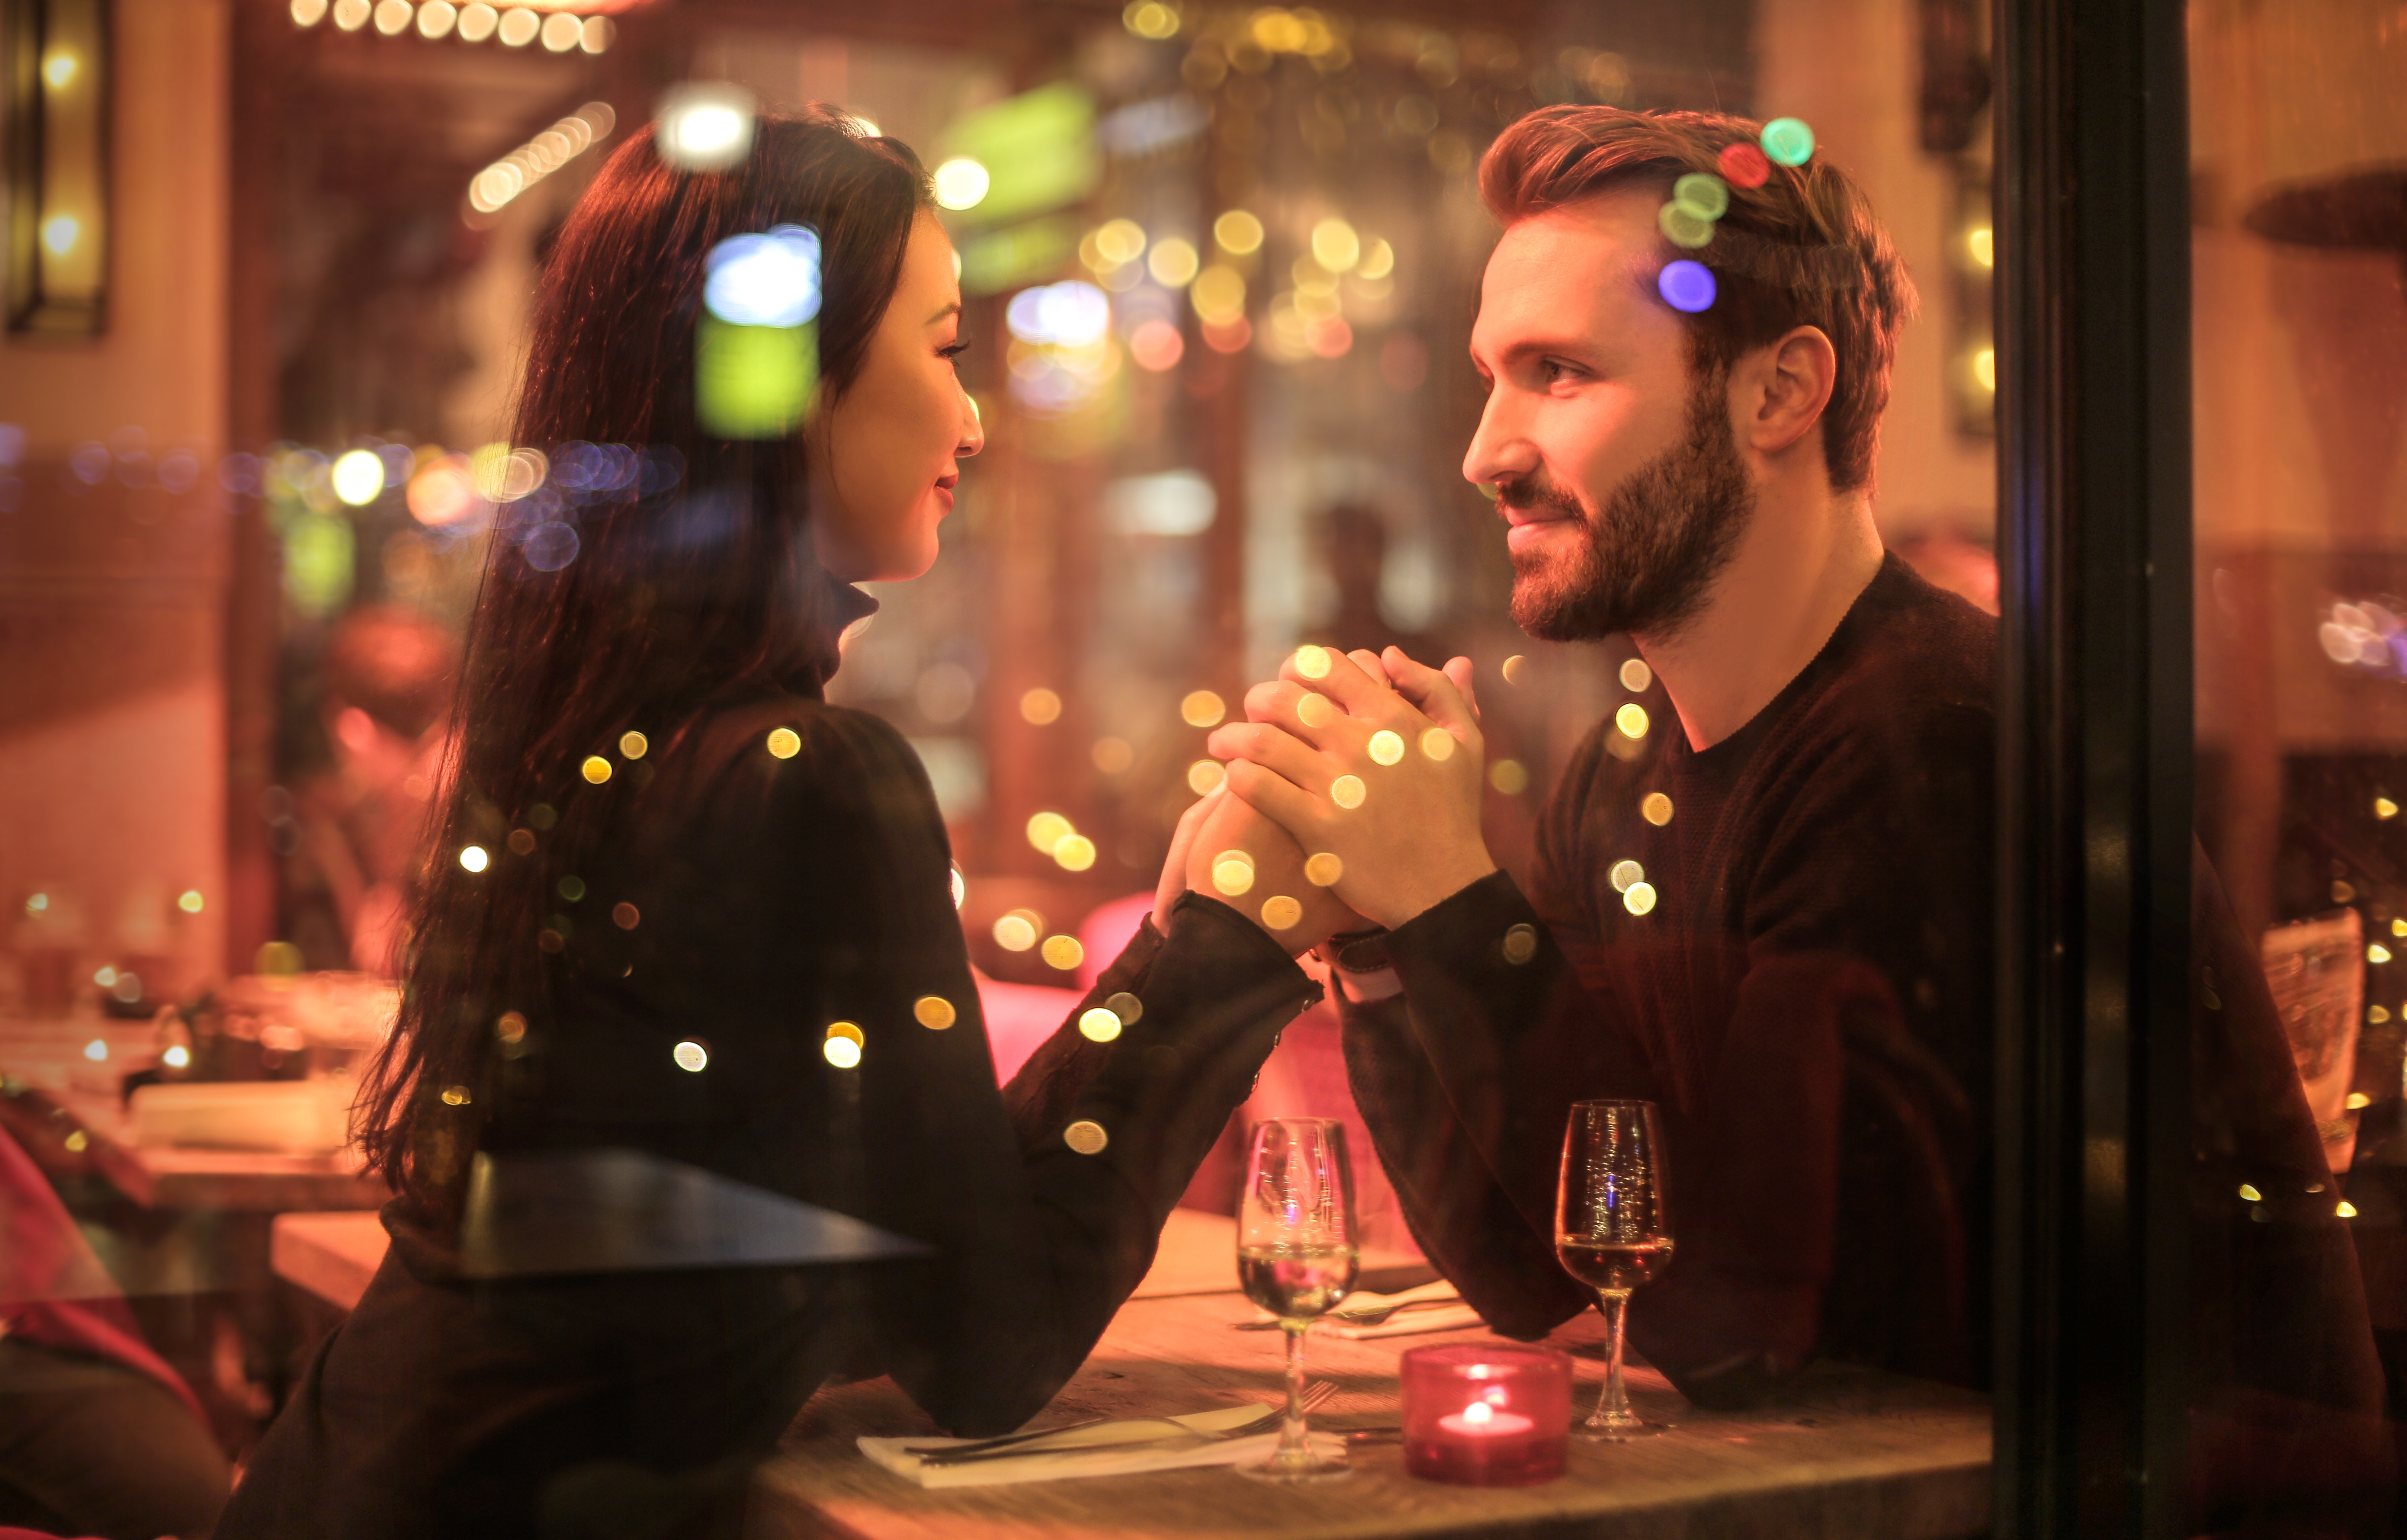 Romantic things to do in leicester